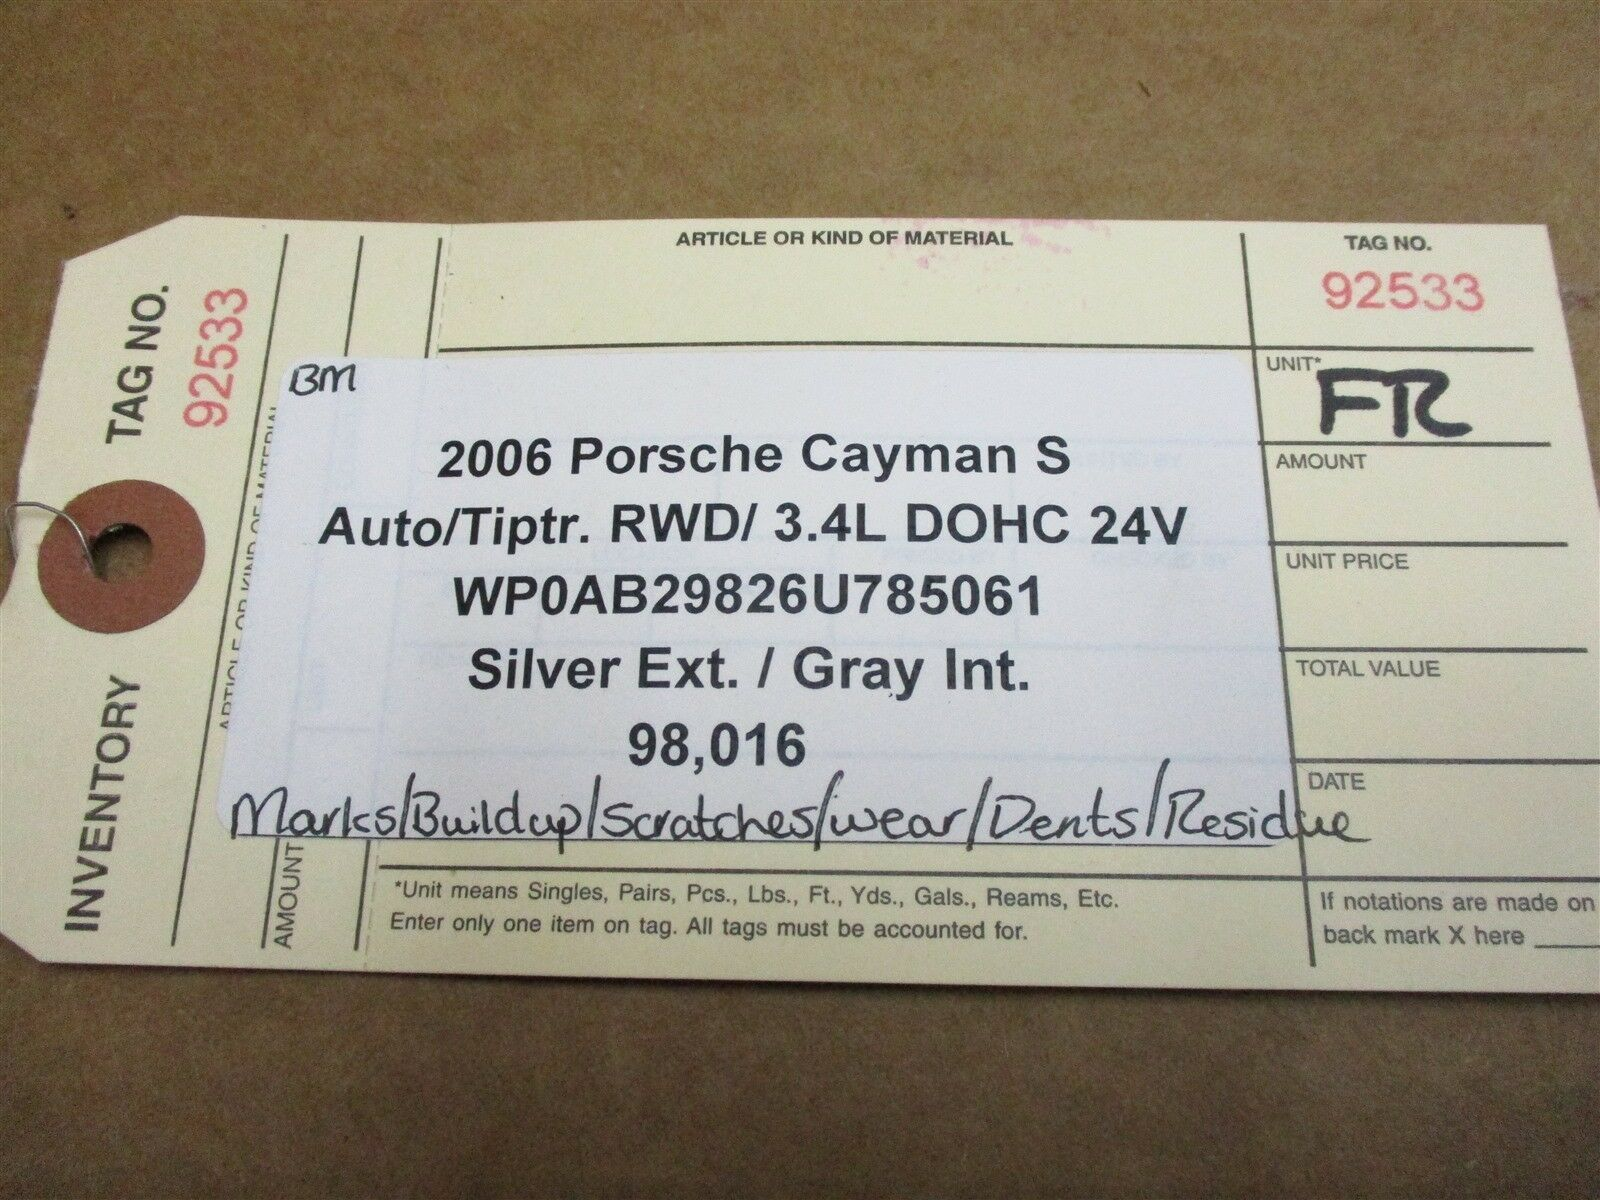 06 Cayman S RWD Porsche 987 R FRONT 12-WAY Gray Leather SEAT PASSENGER 98,016